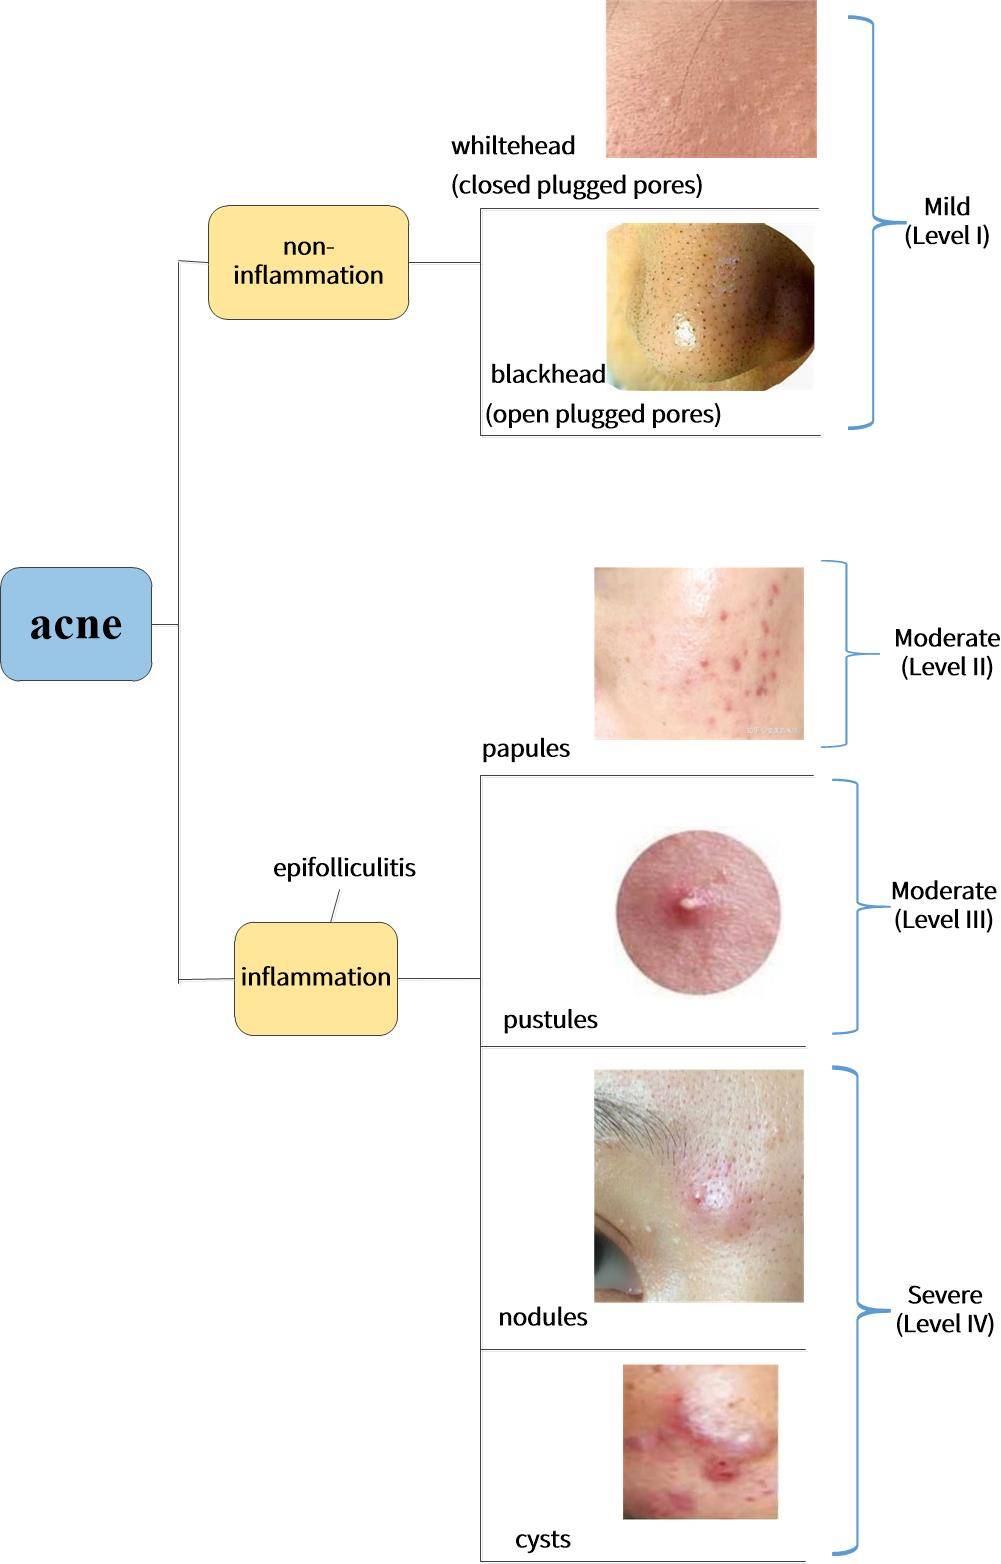 Different types of acne. Whiteheads and blackheads are non-inflammatory acne, and they are also the mildest grades of acne. Papules, pustules, nodules and cysts belong to inflammatory acne. Papules and pustules belong to moderate acne, and nodules and cysts belong to severe acne.